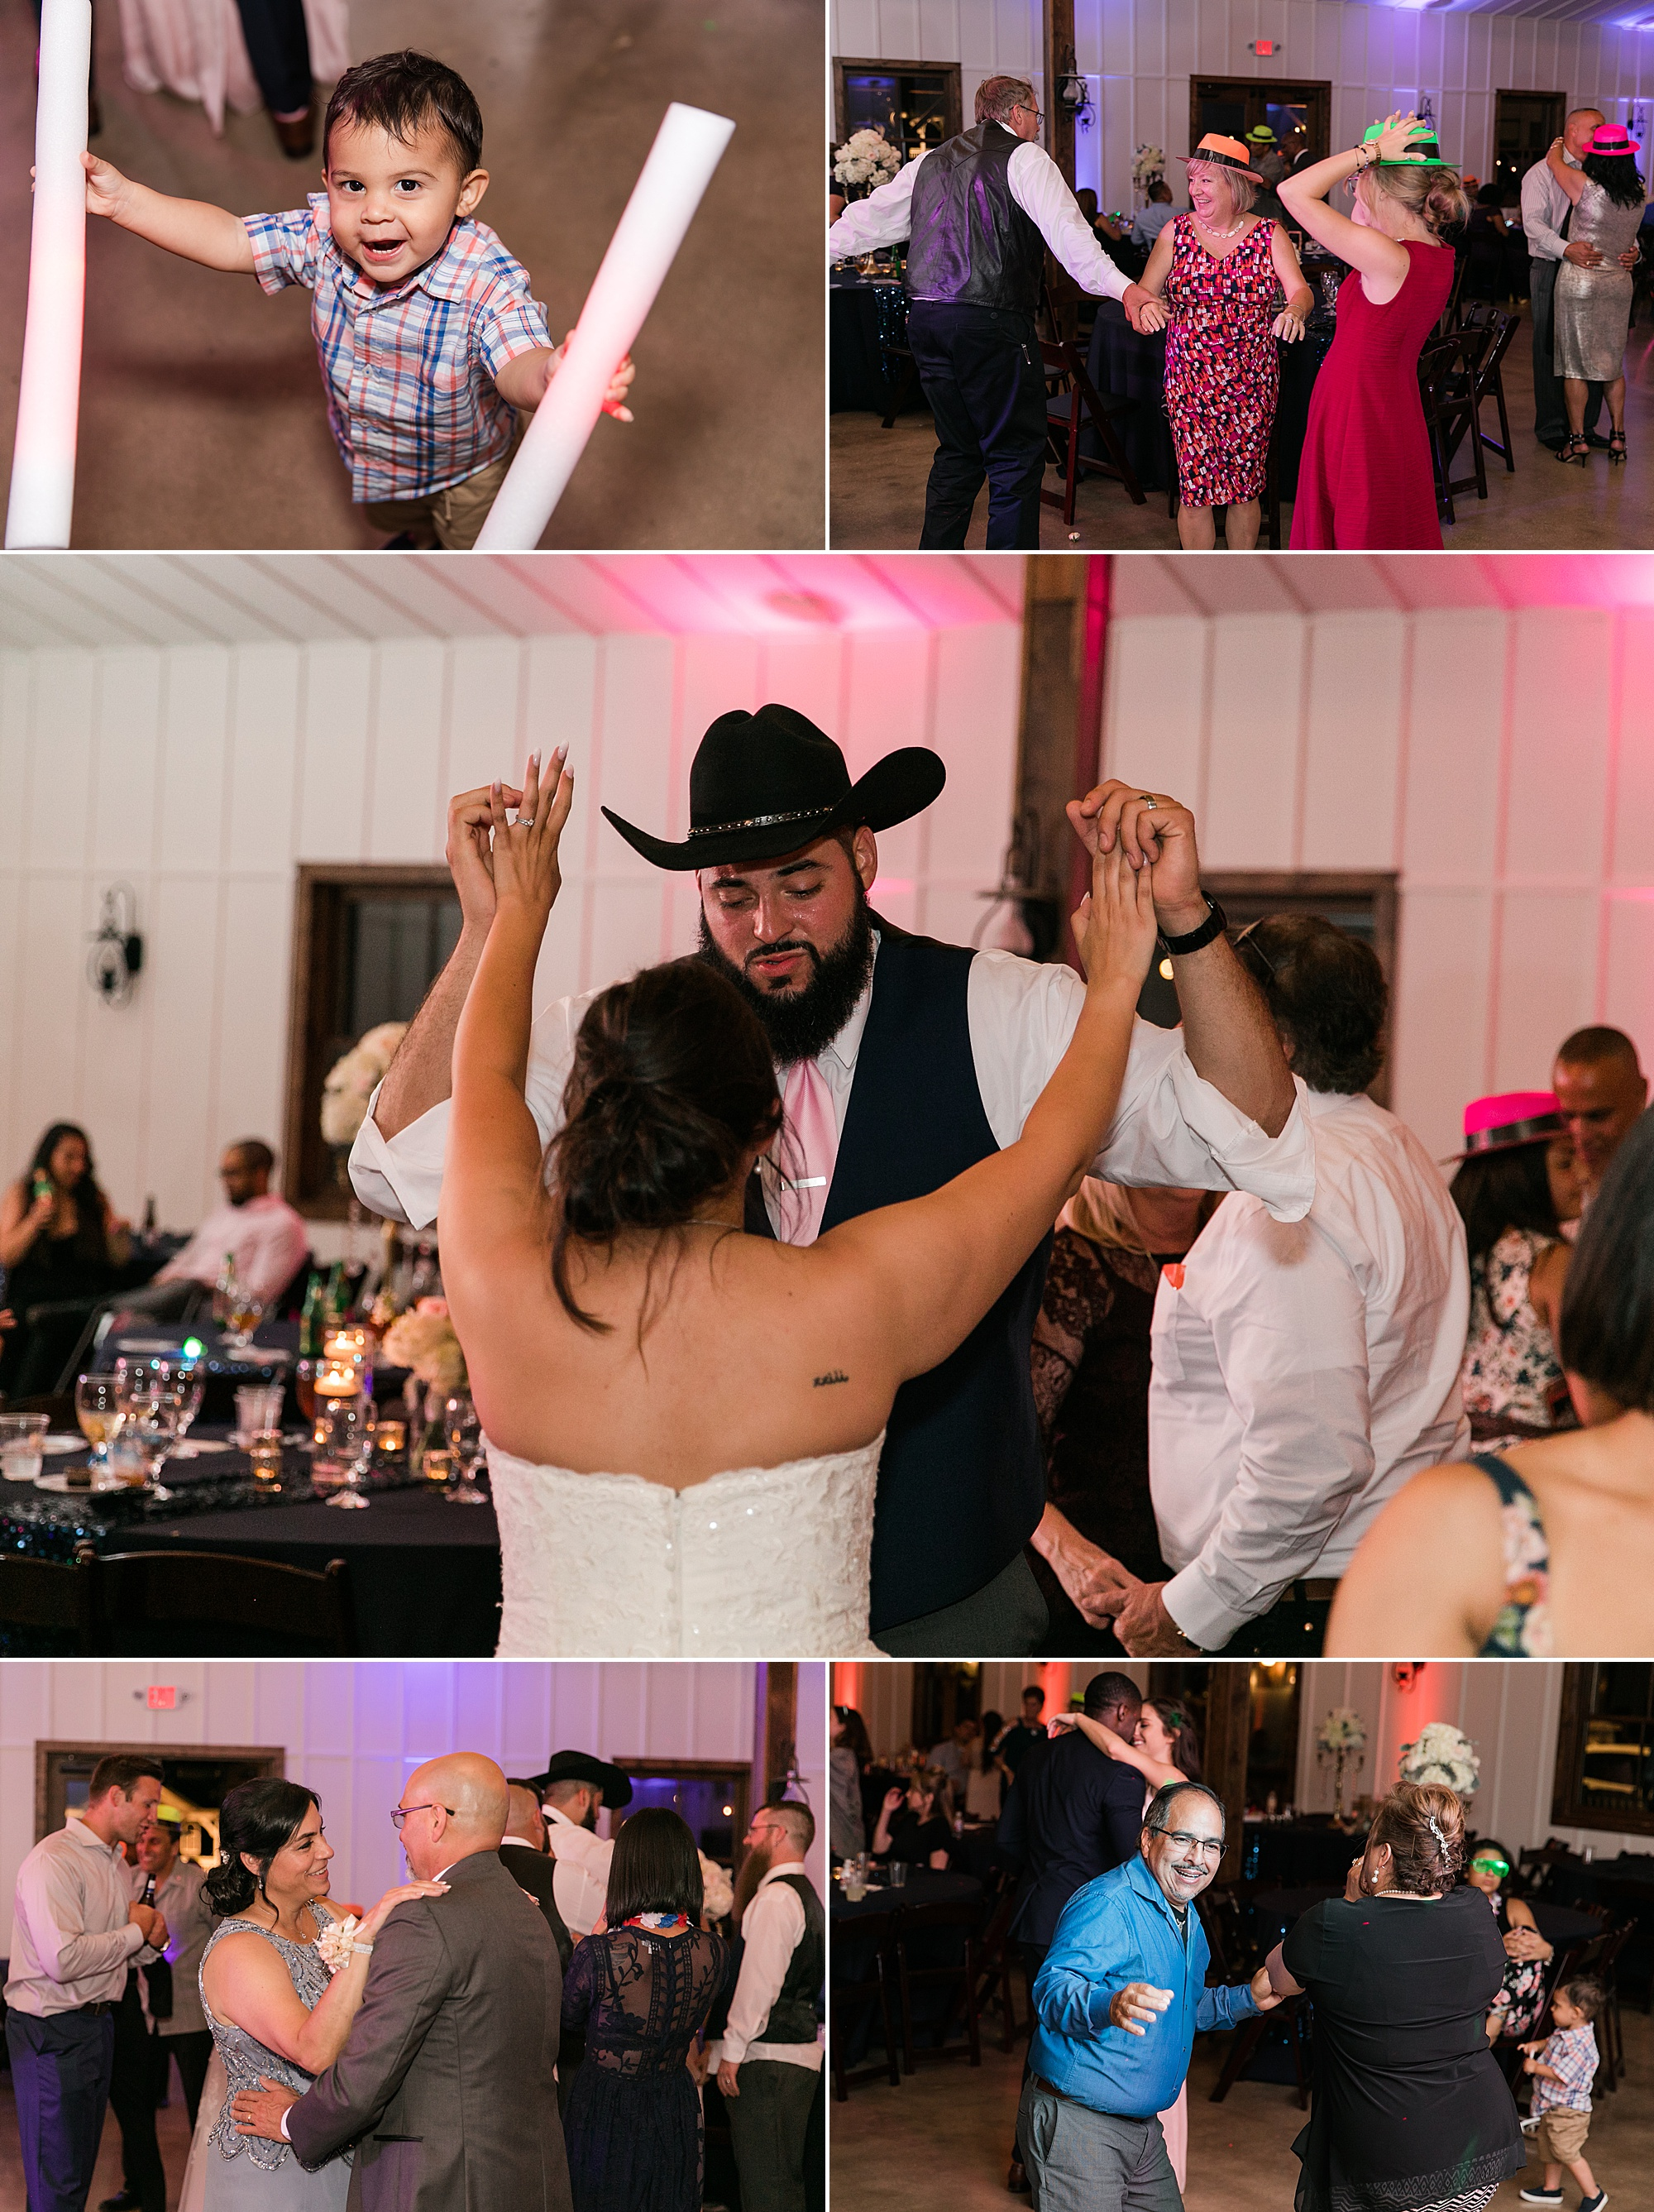 Wedding-Photographer-Bulverde-Texas-Western-Sky-Event-Venue-Carly-Barton-Photography_0067.jpg